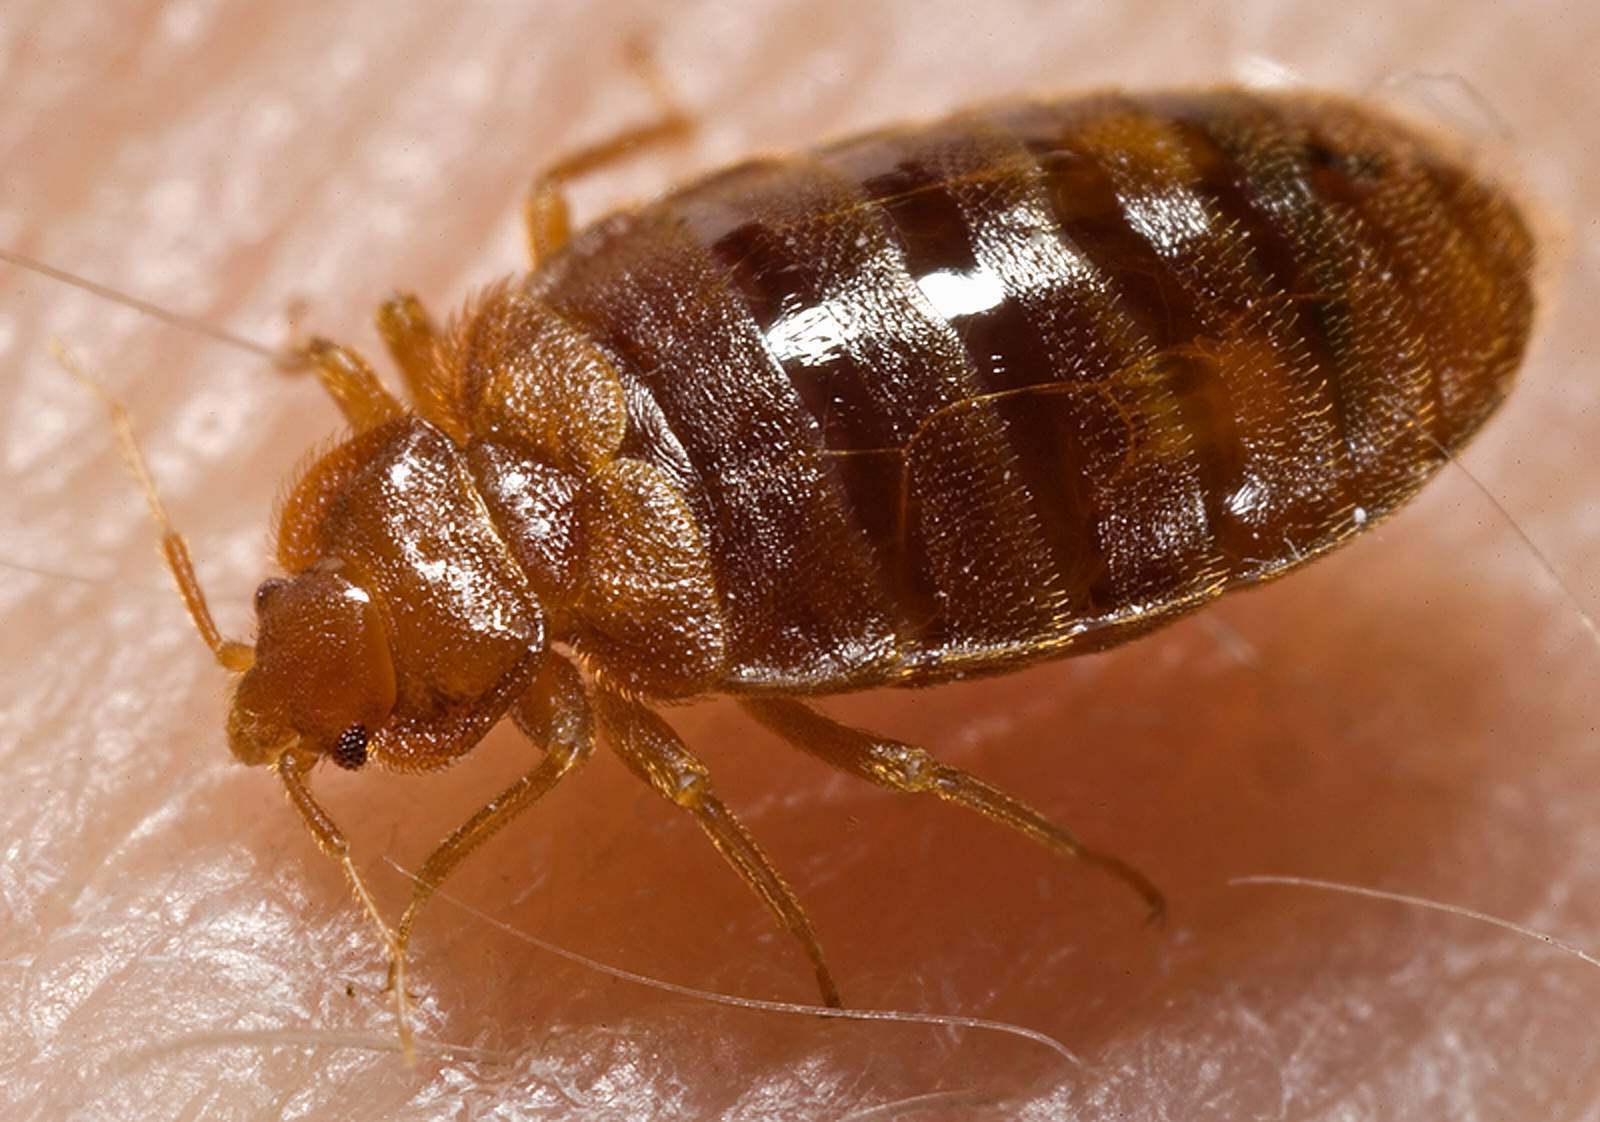 Treating bed mites